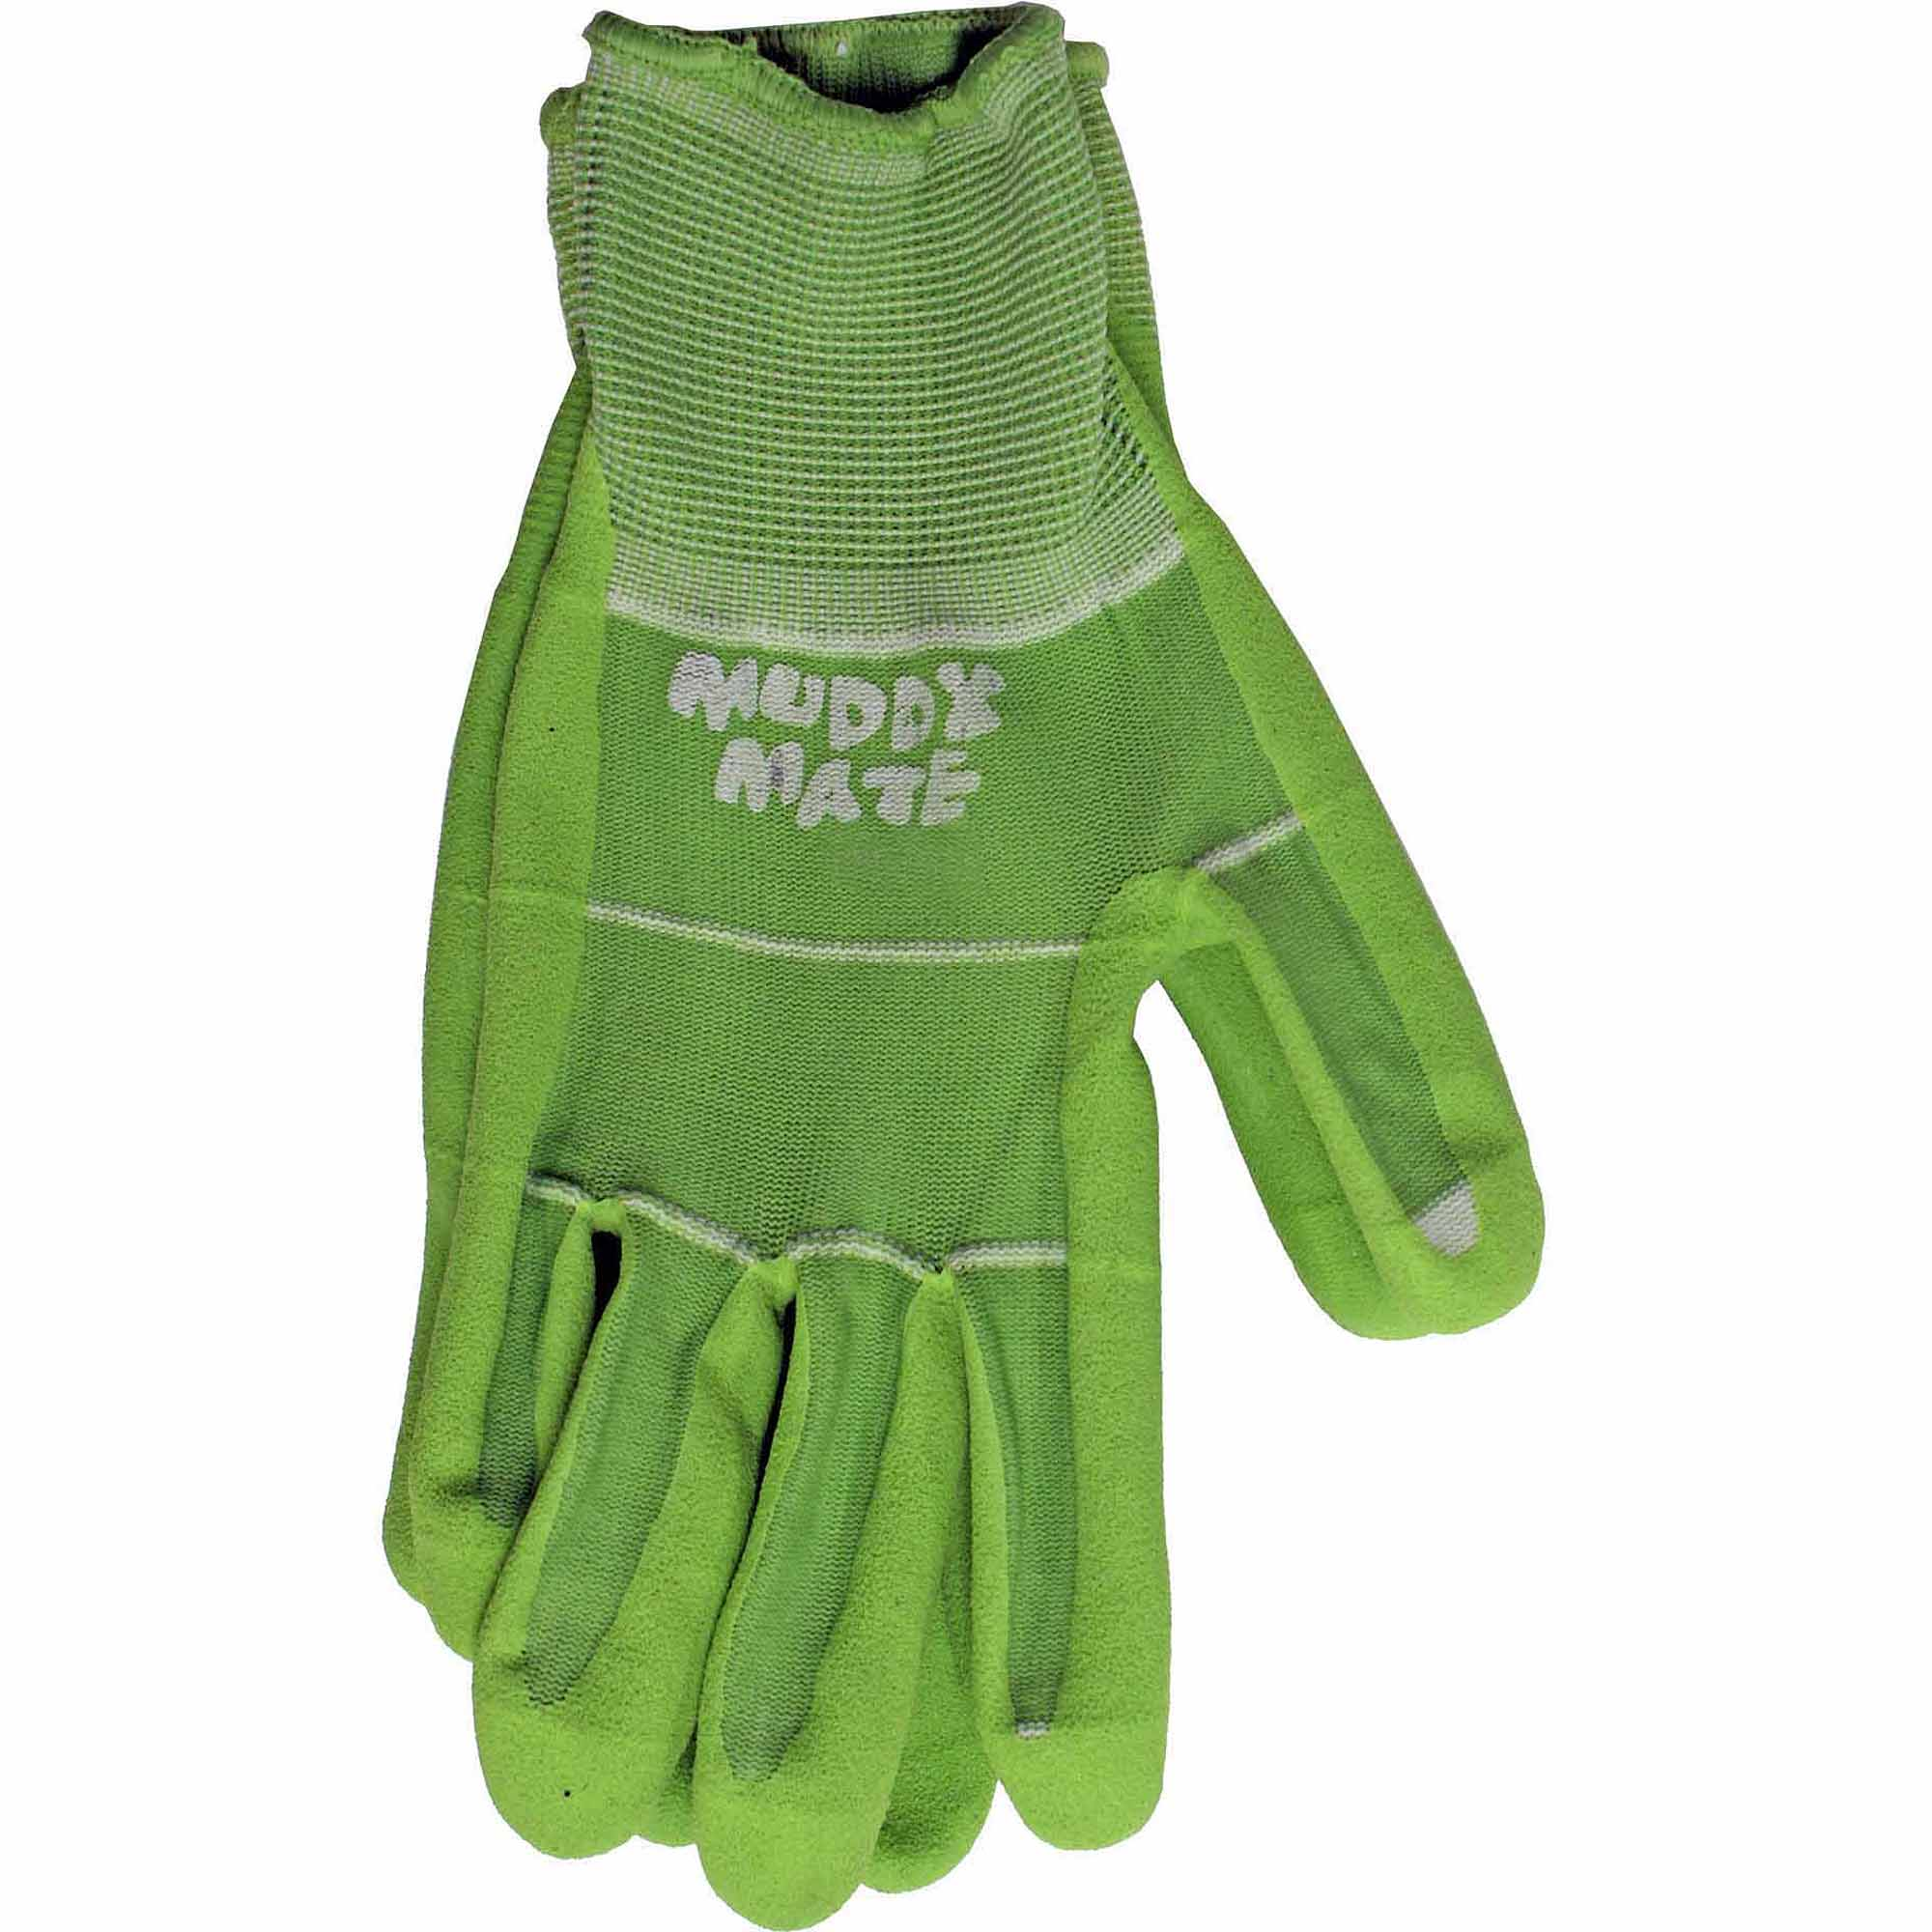 Boss Gloves Medium Green Nitrile Palm Garden Gloves